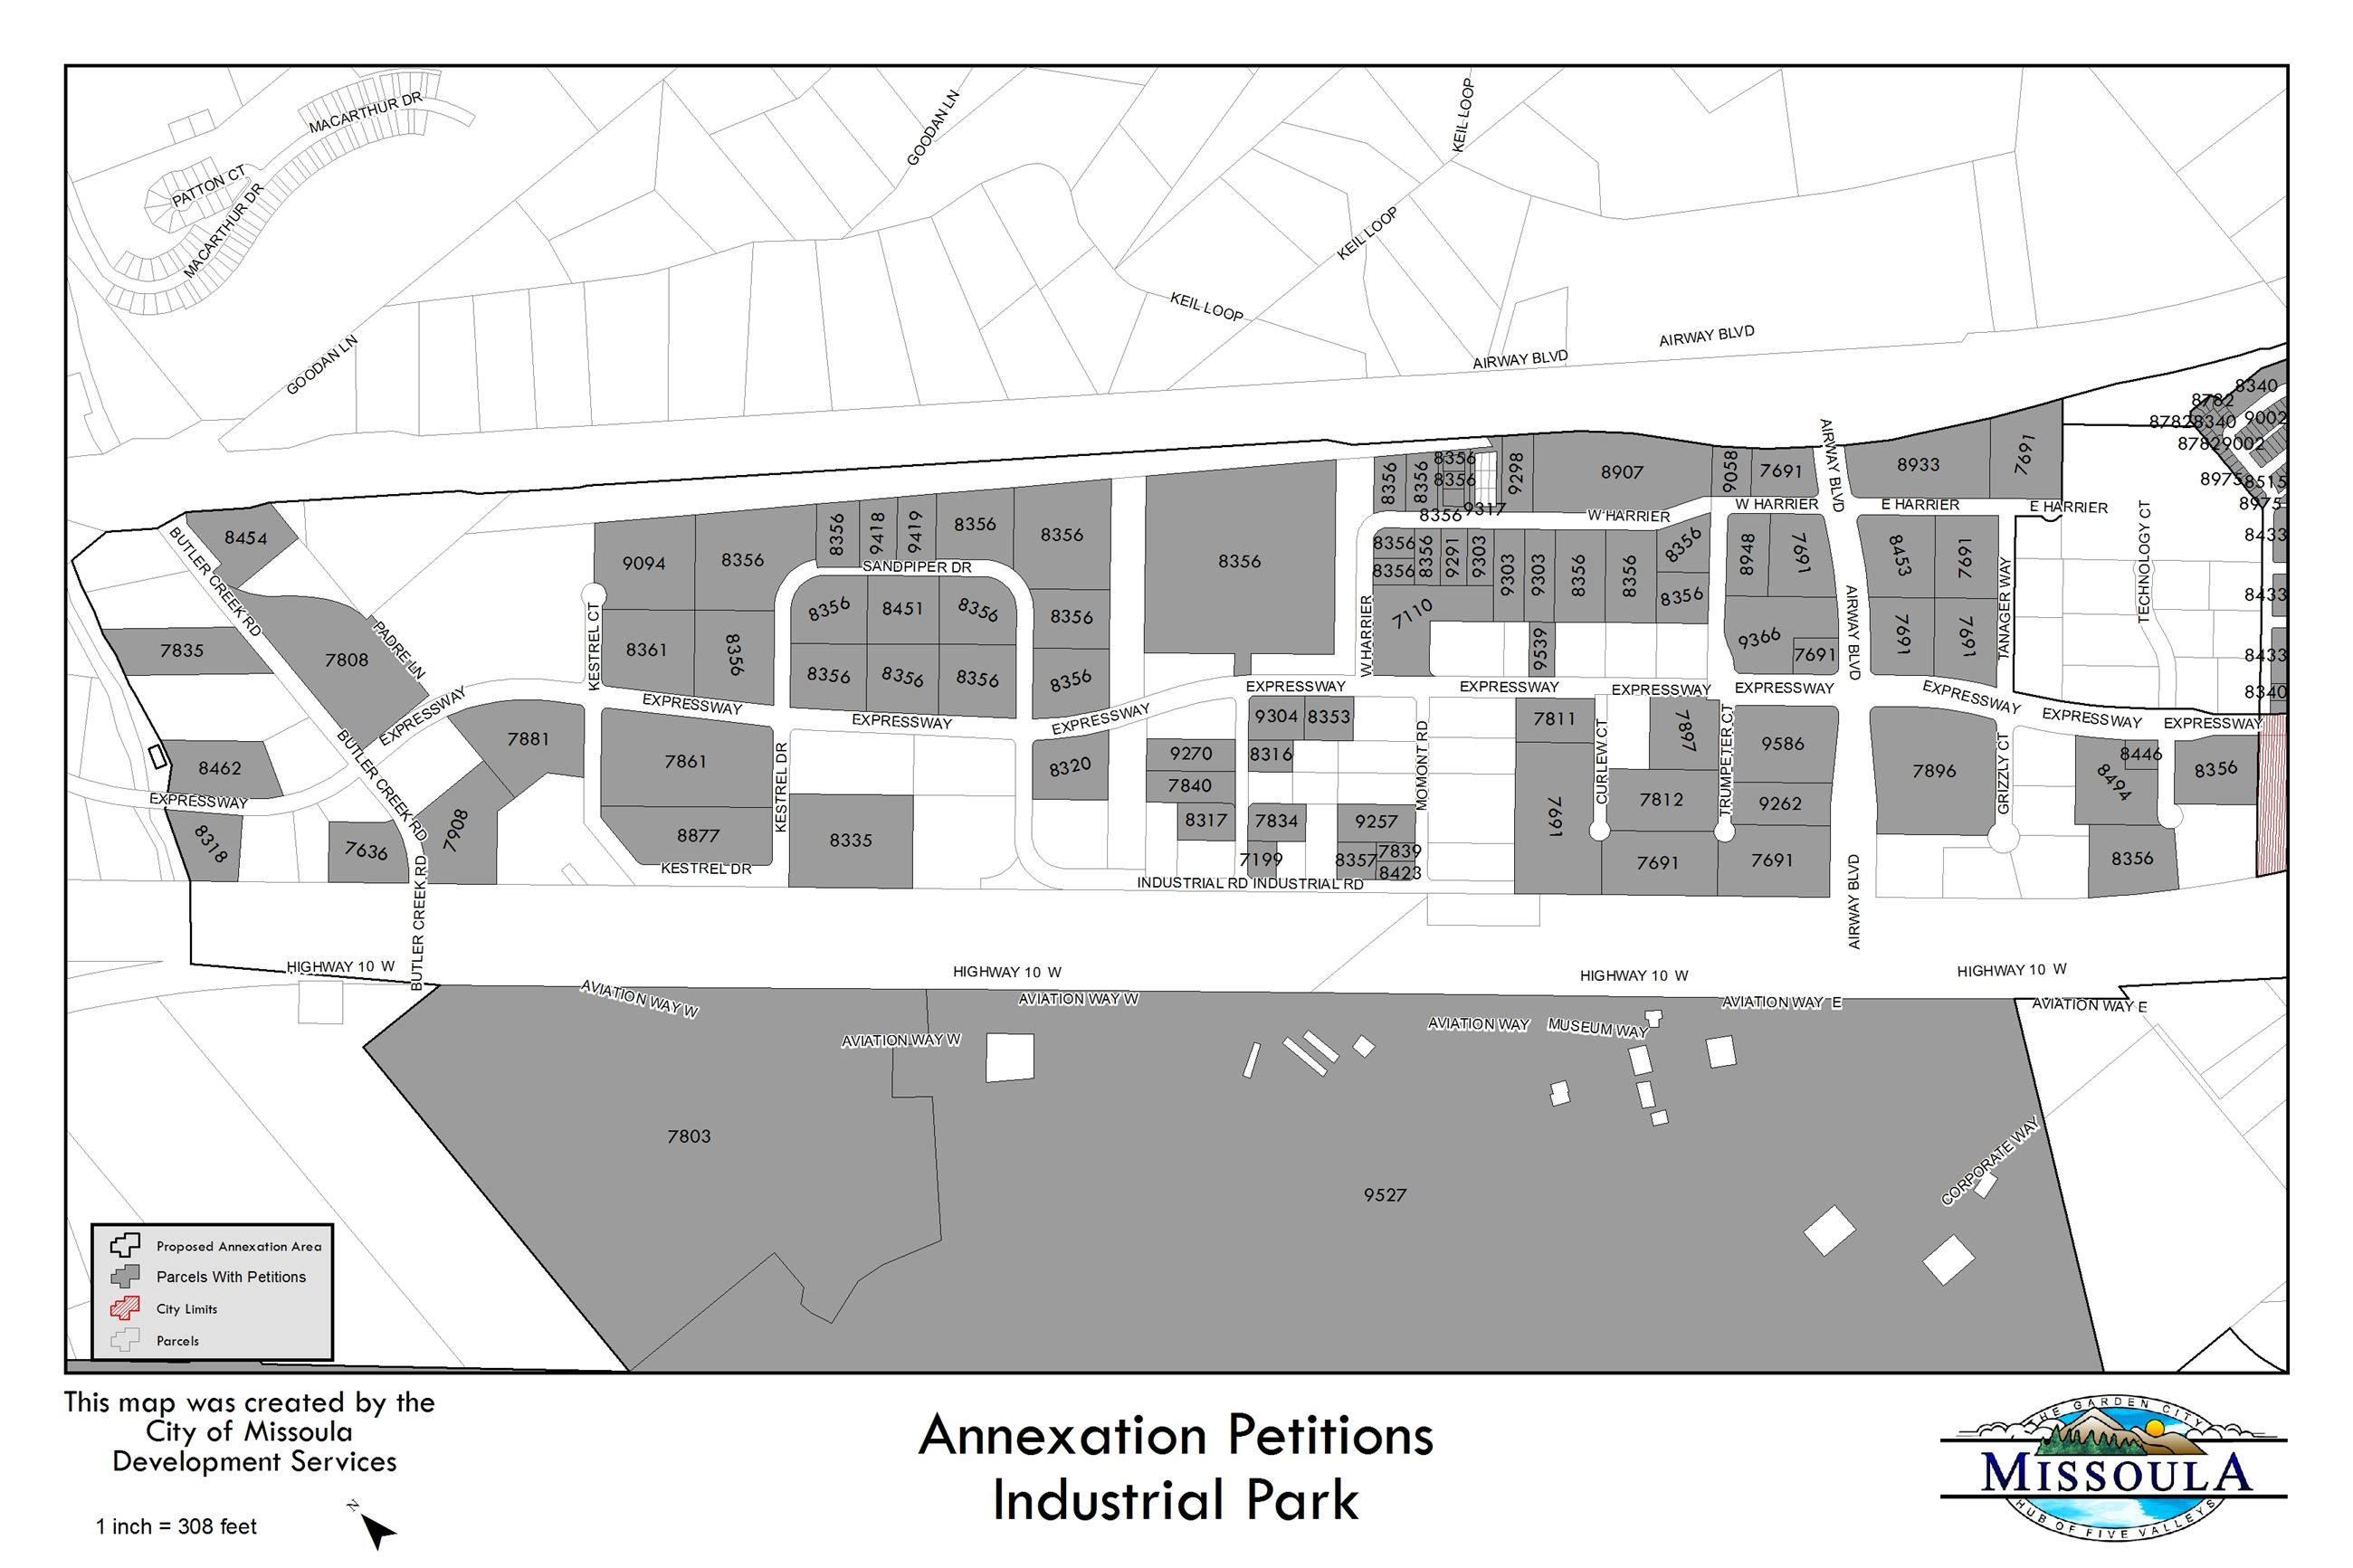 Industrial Park - Petitions